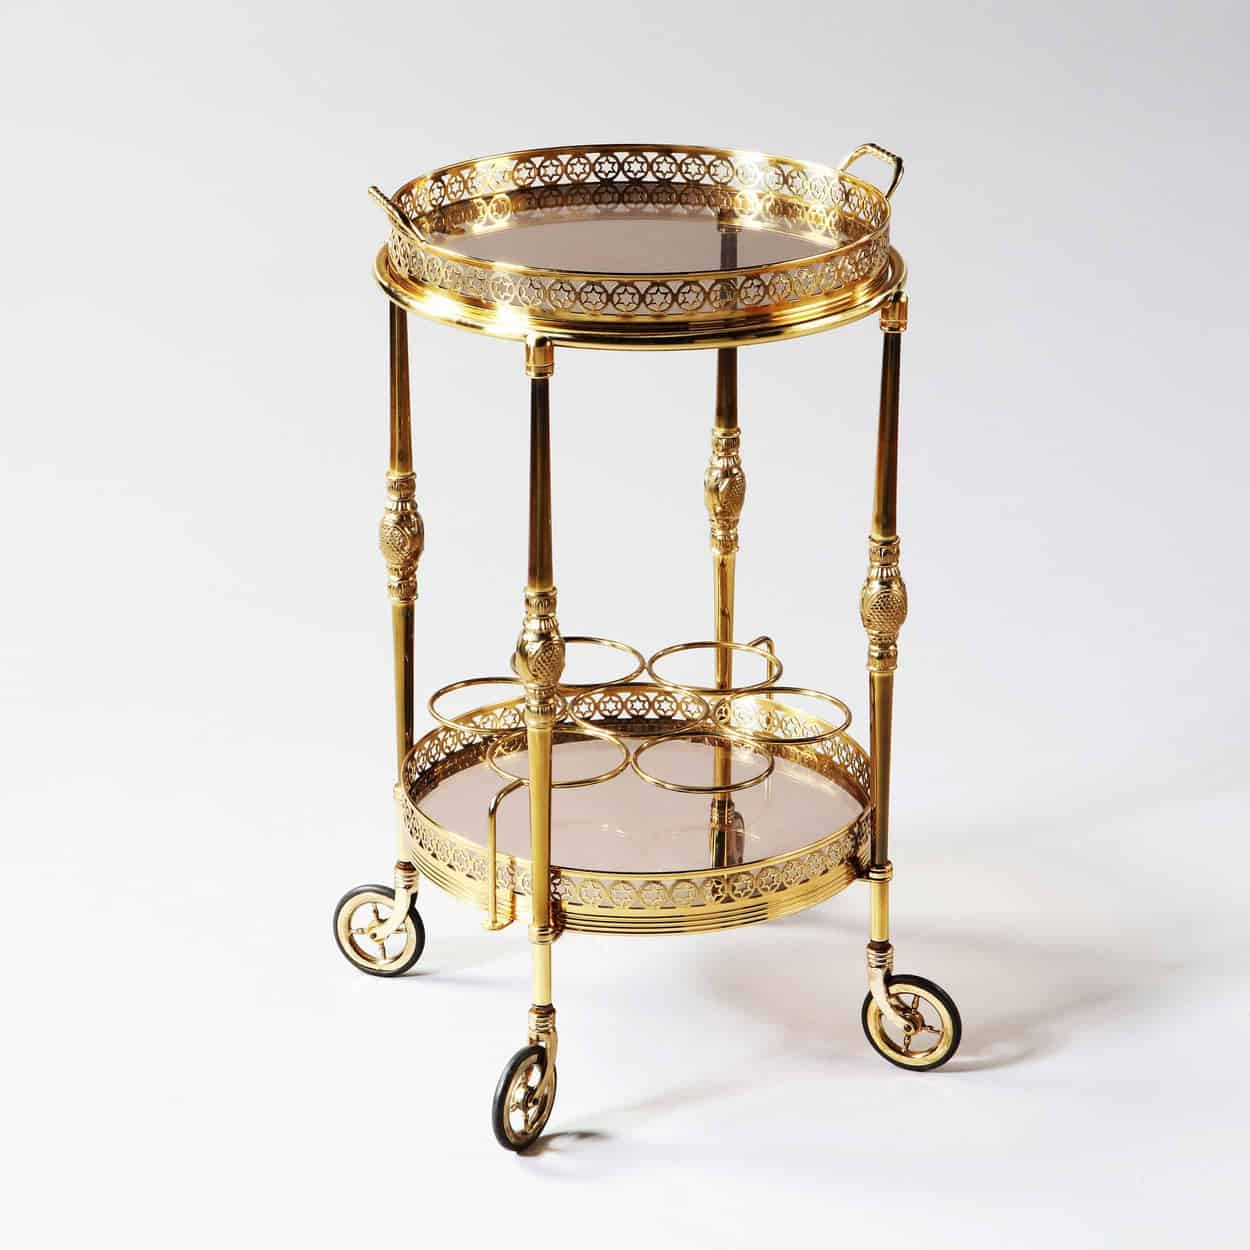 Round Drinks Trolley French Mid Century Polished Brass Circular Bar Cart Nicholas Wells Antiques Ltd Antique Dealers London Masterpiece Located In London